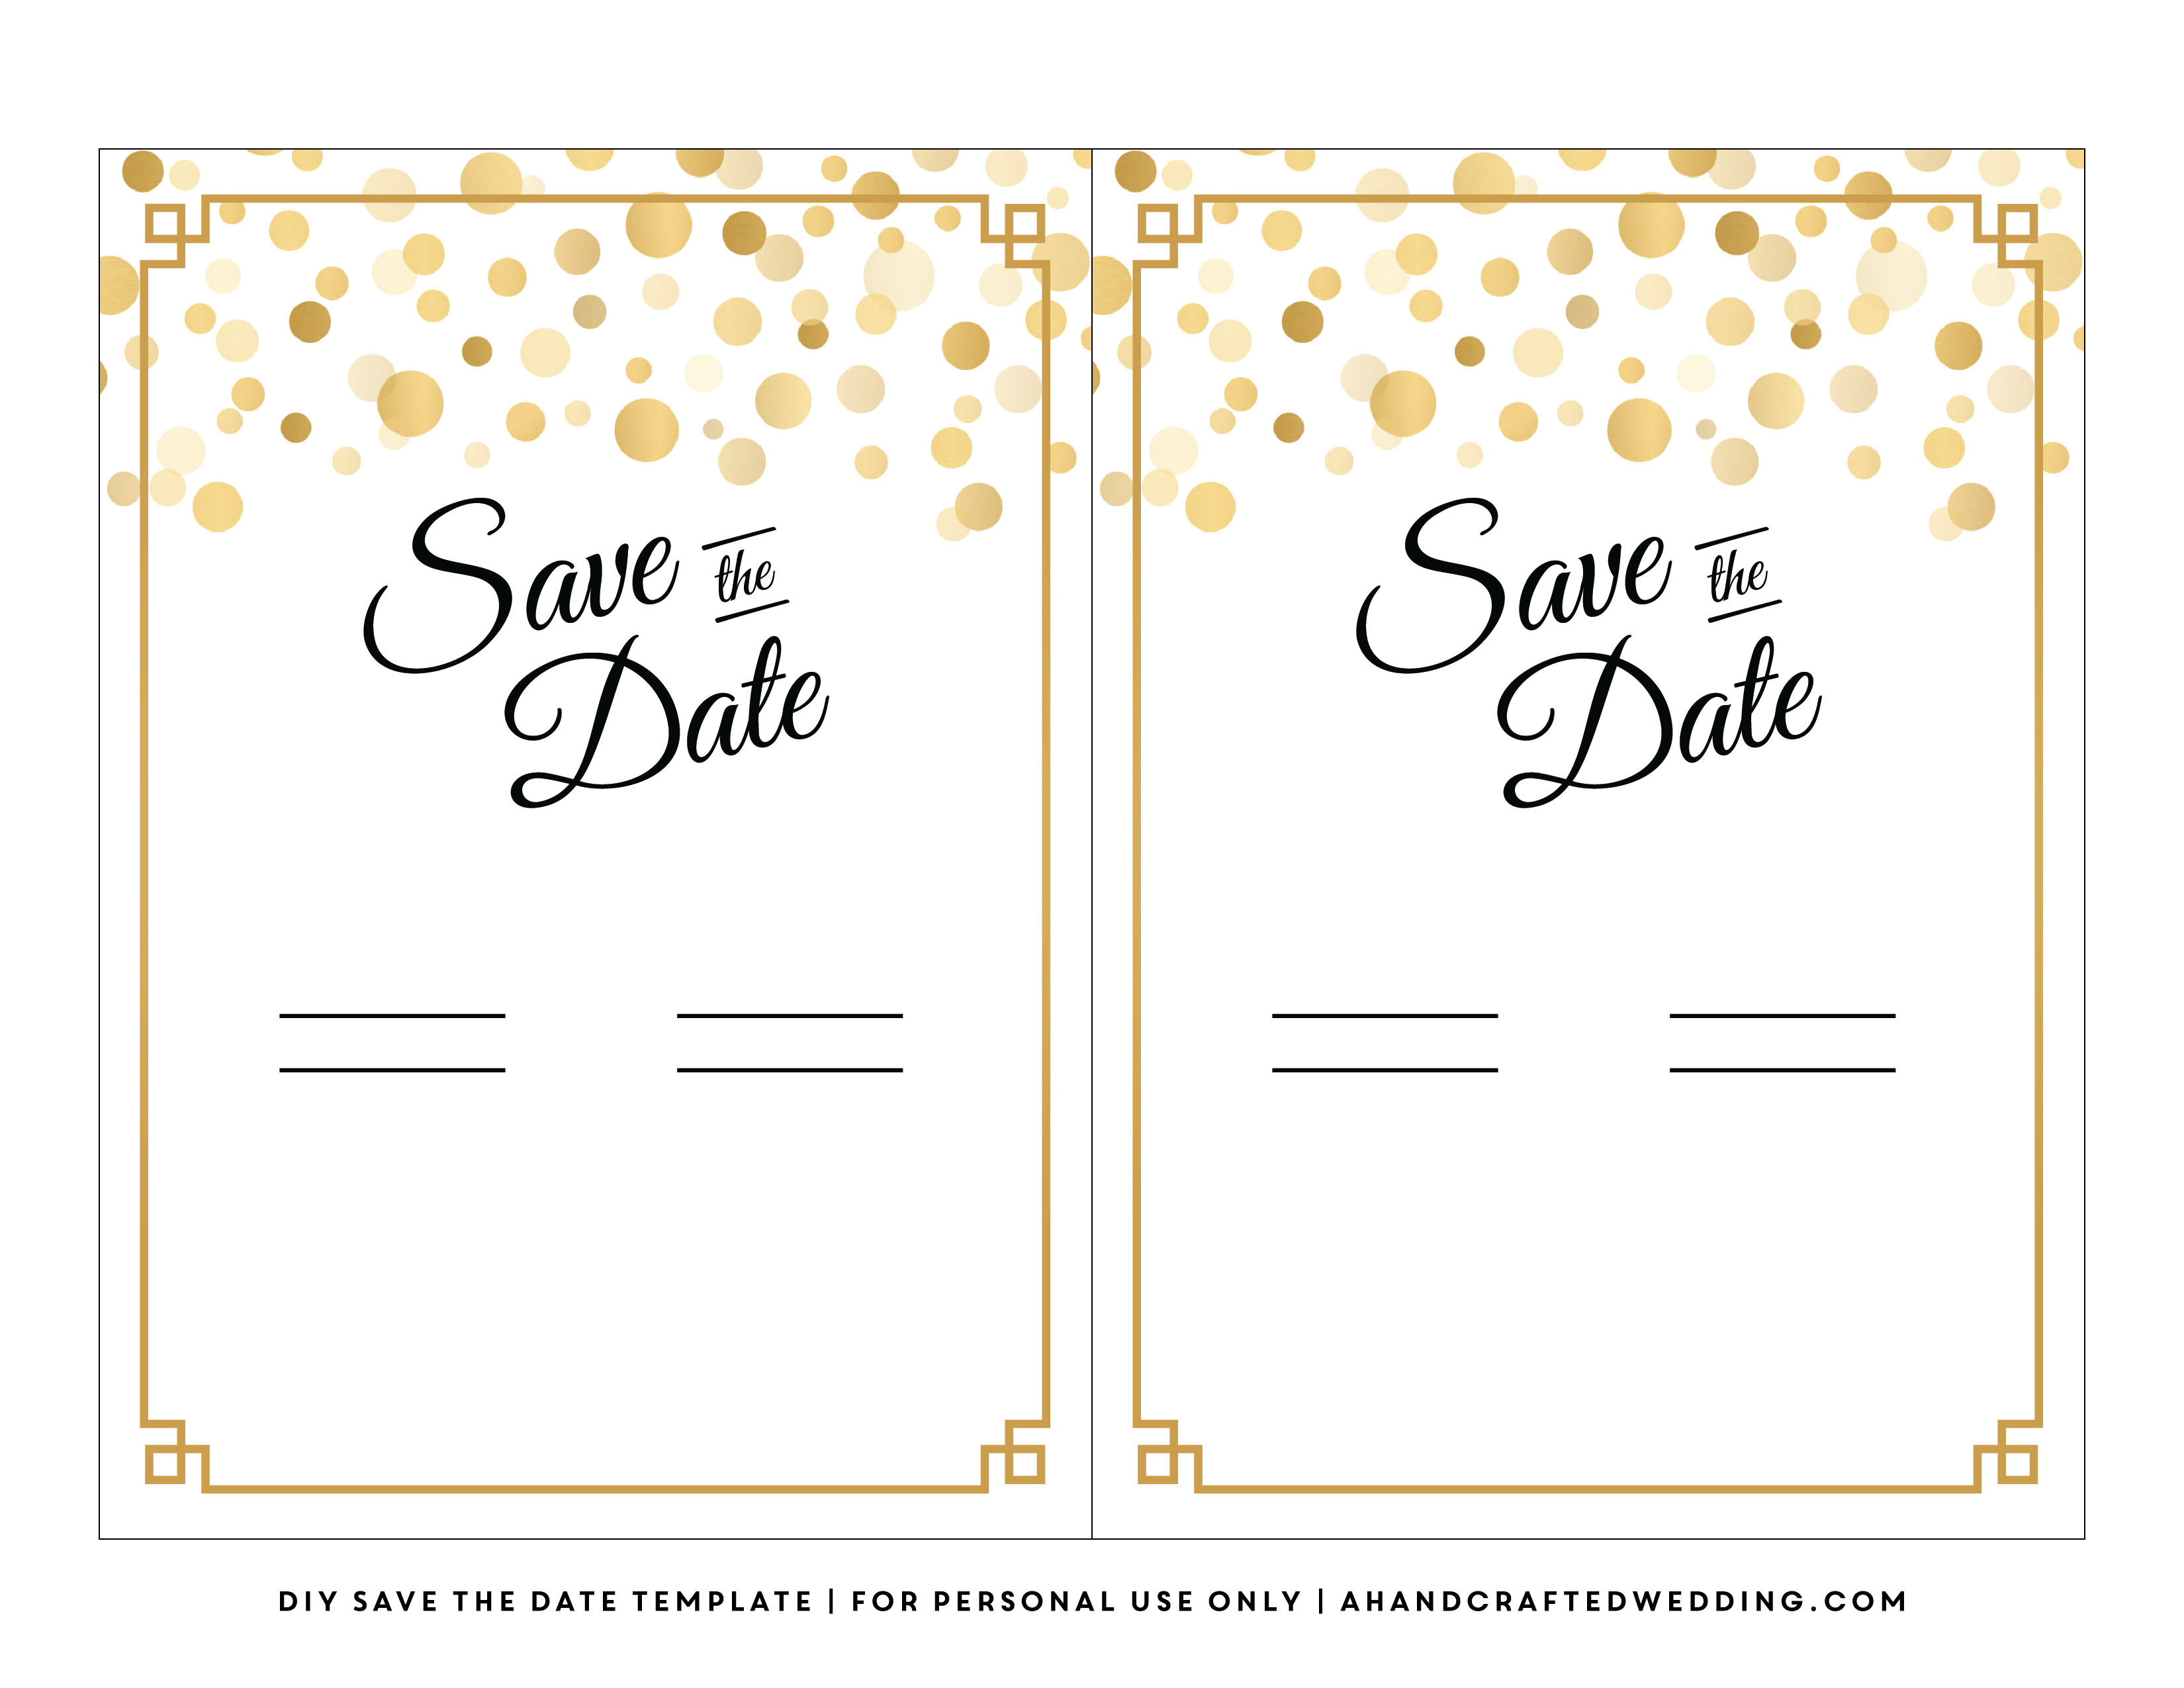 Diy Save the Date Cards Templates 7 Best Images Of Diy Save the Date Template Halloween